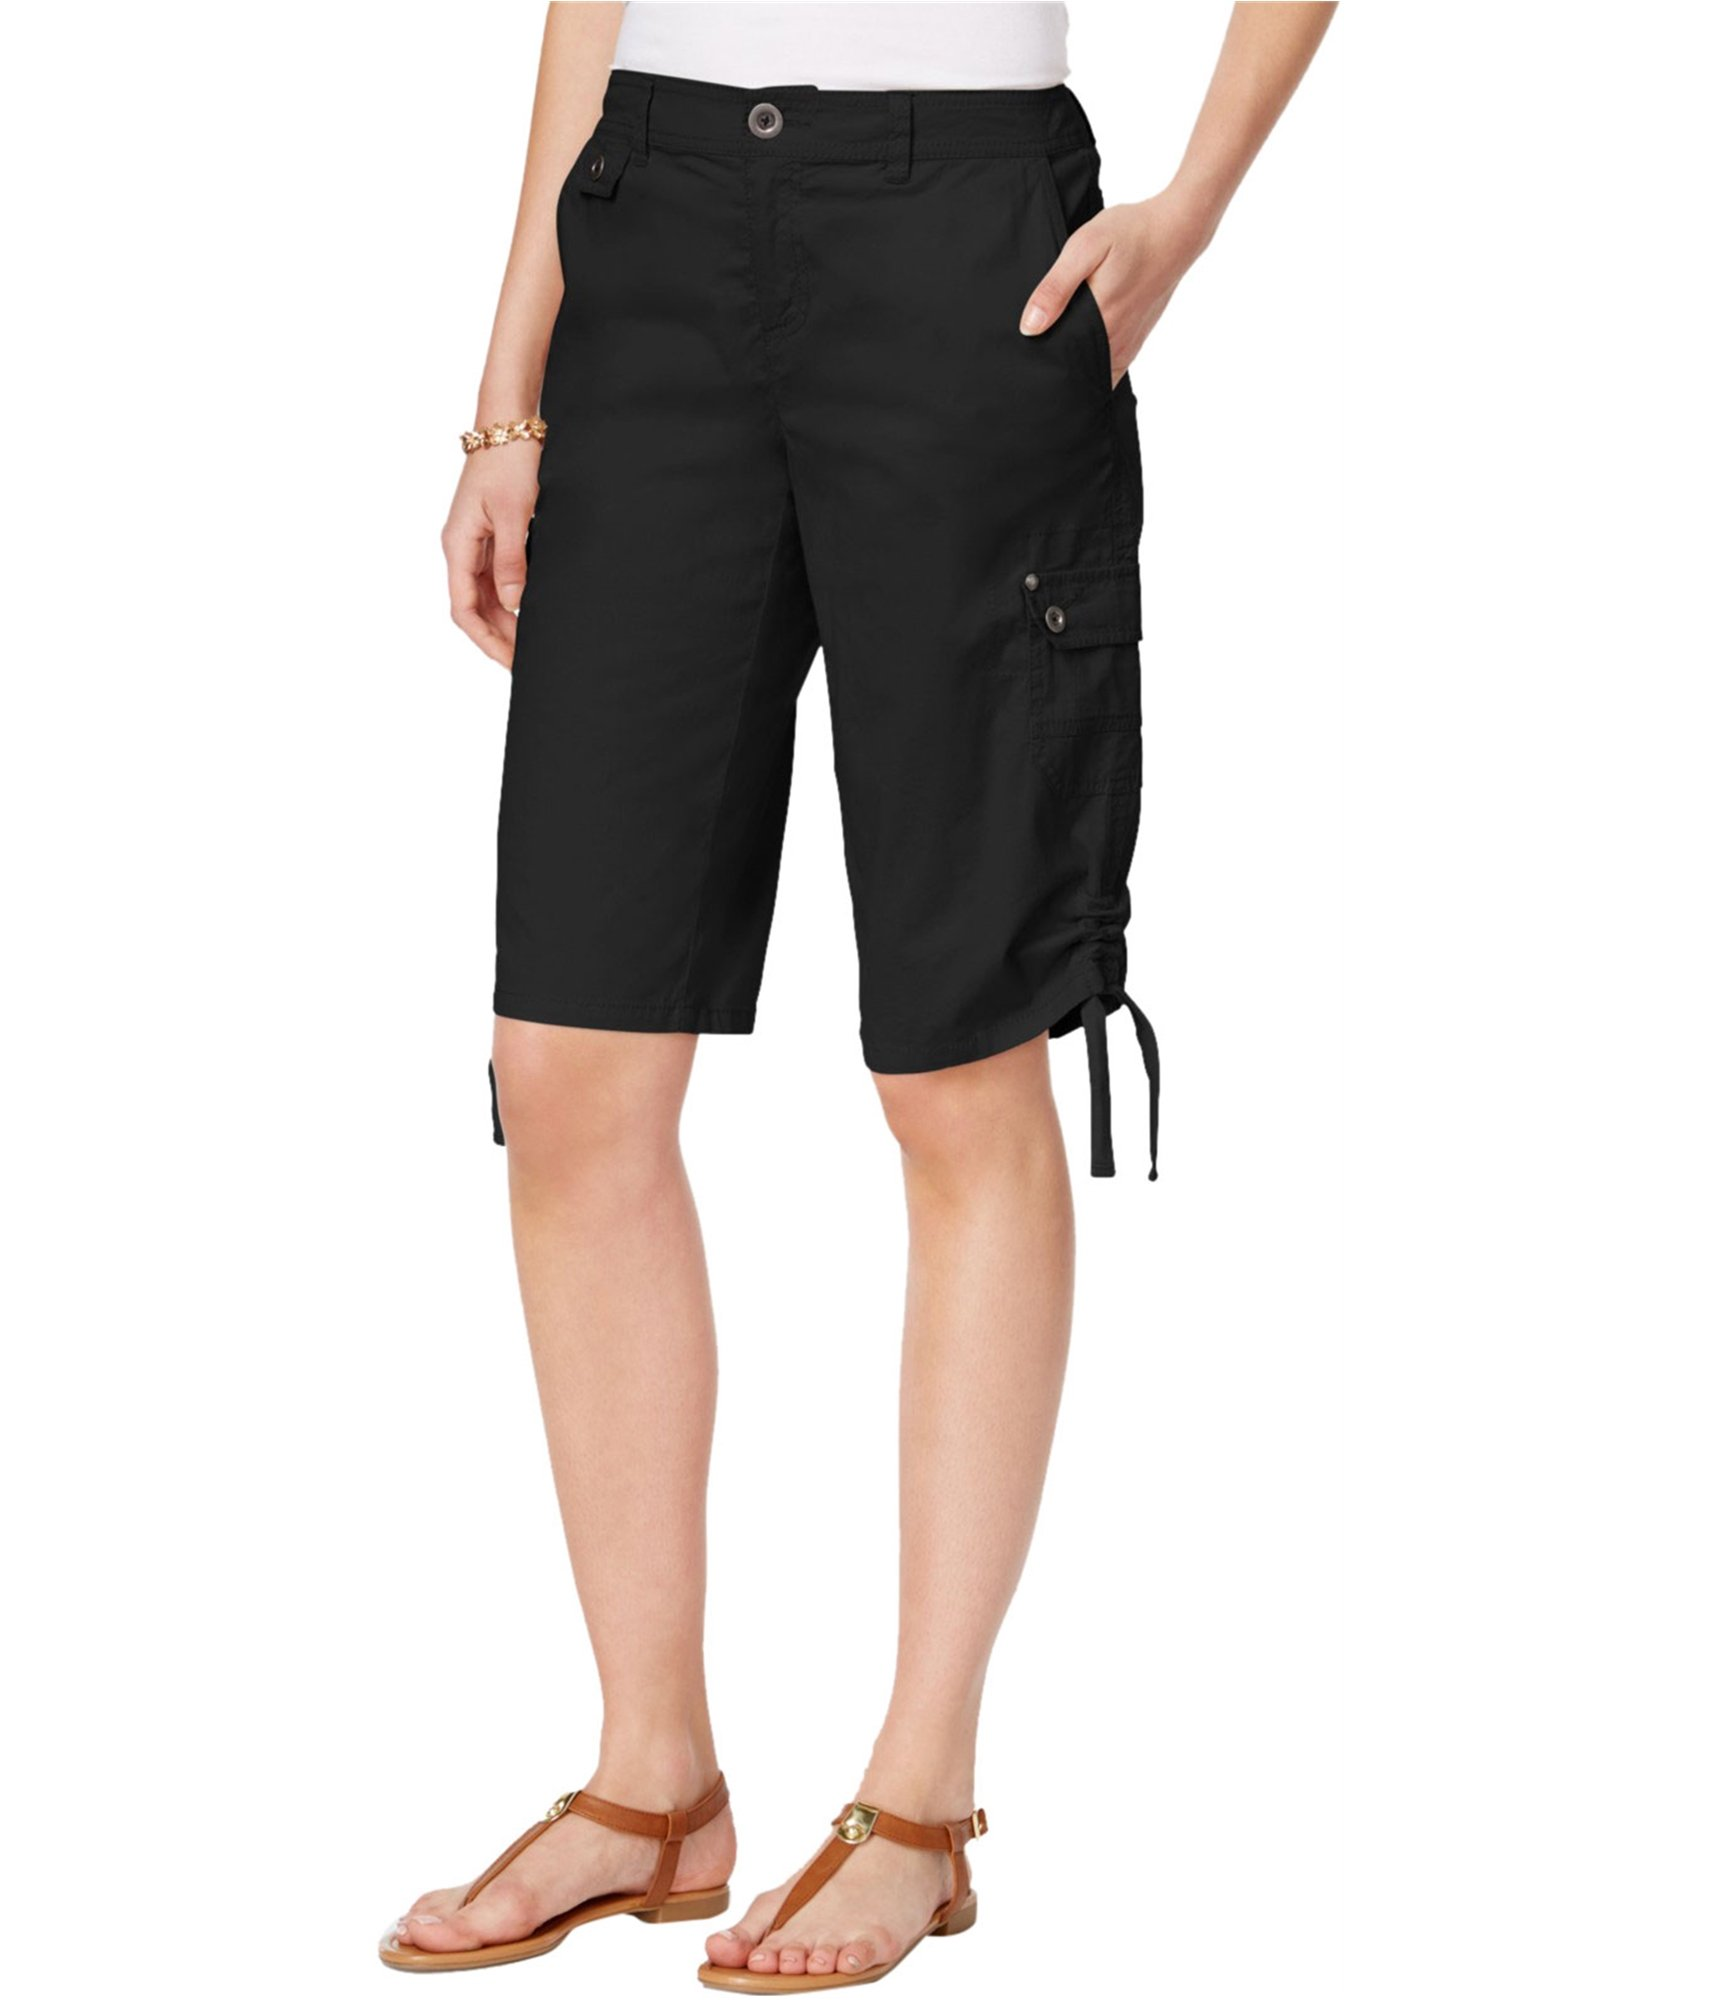 Style & Co.. Womens Mid-Rise Ruched Bermuda Shorts Black 6